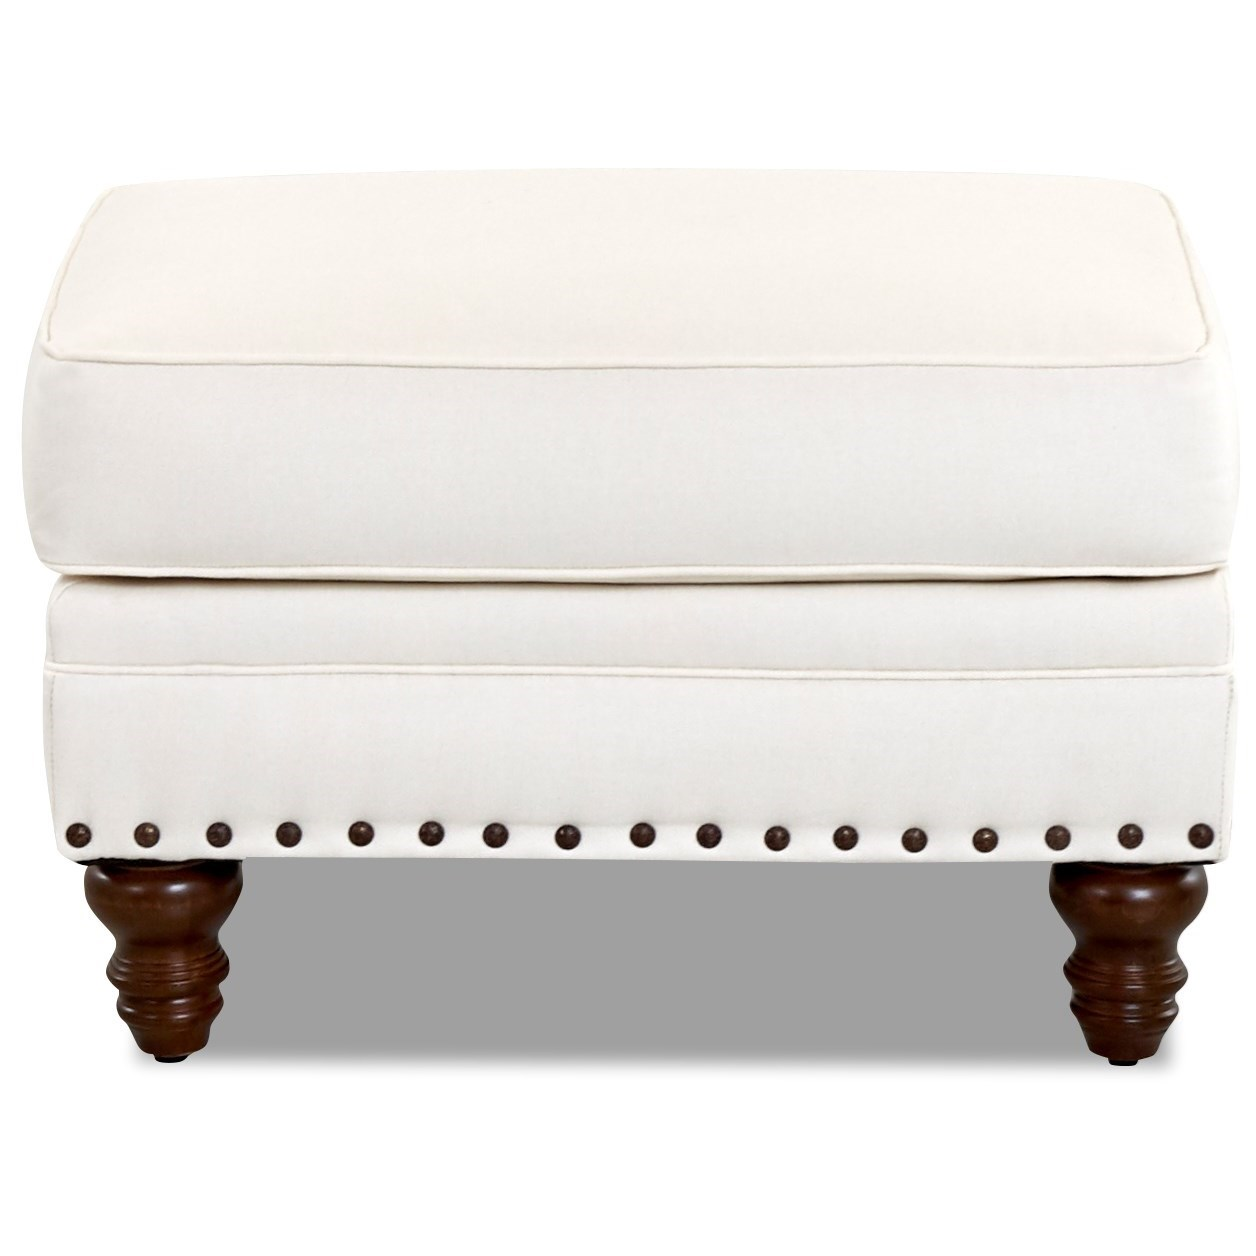 Burbank Ottoman w/ Nailheads by Klaussner at Northeast Factory Direct